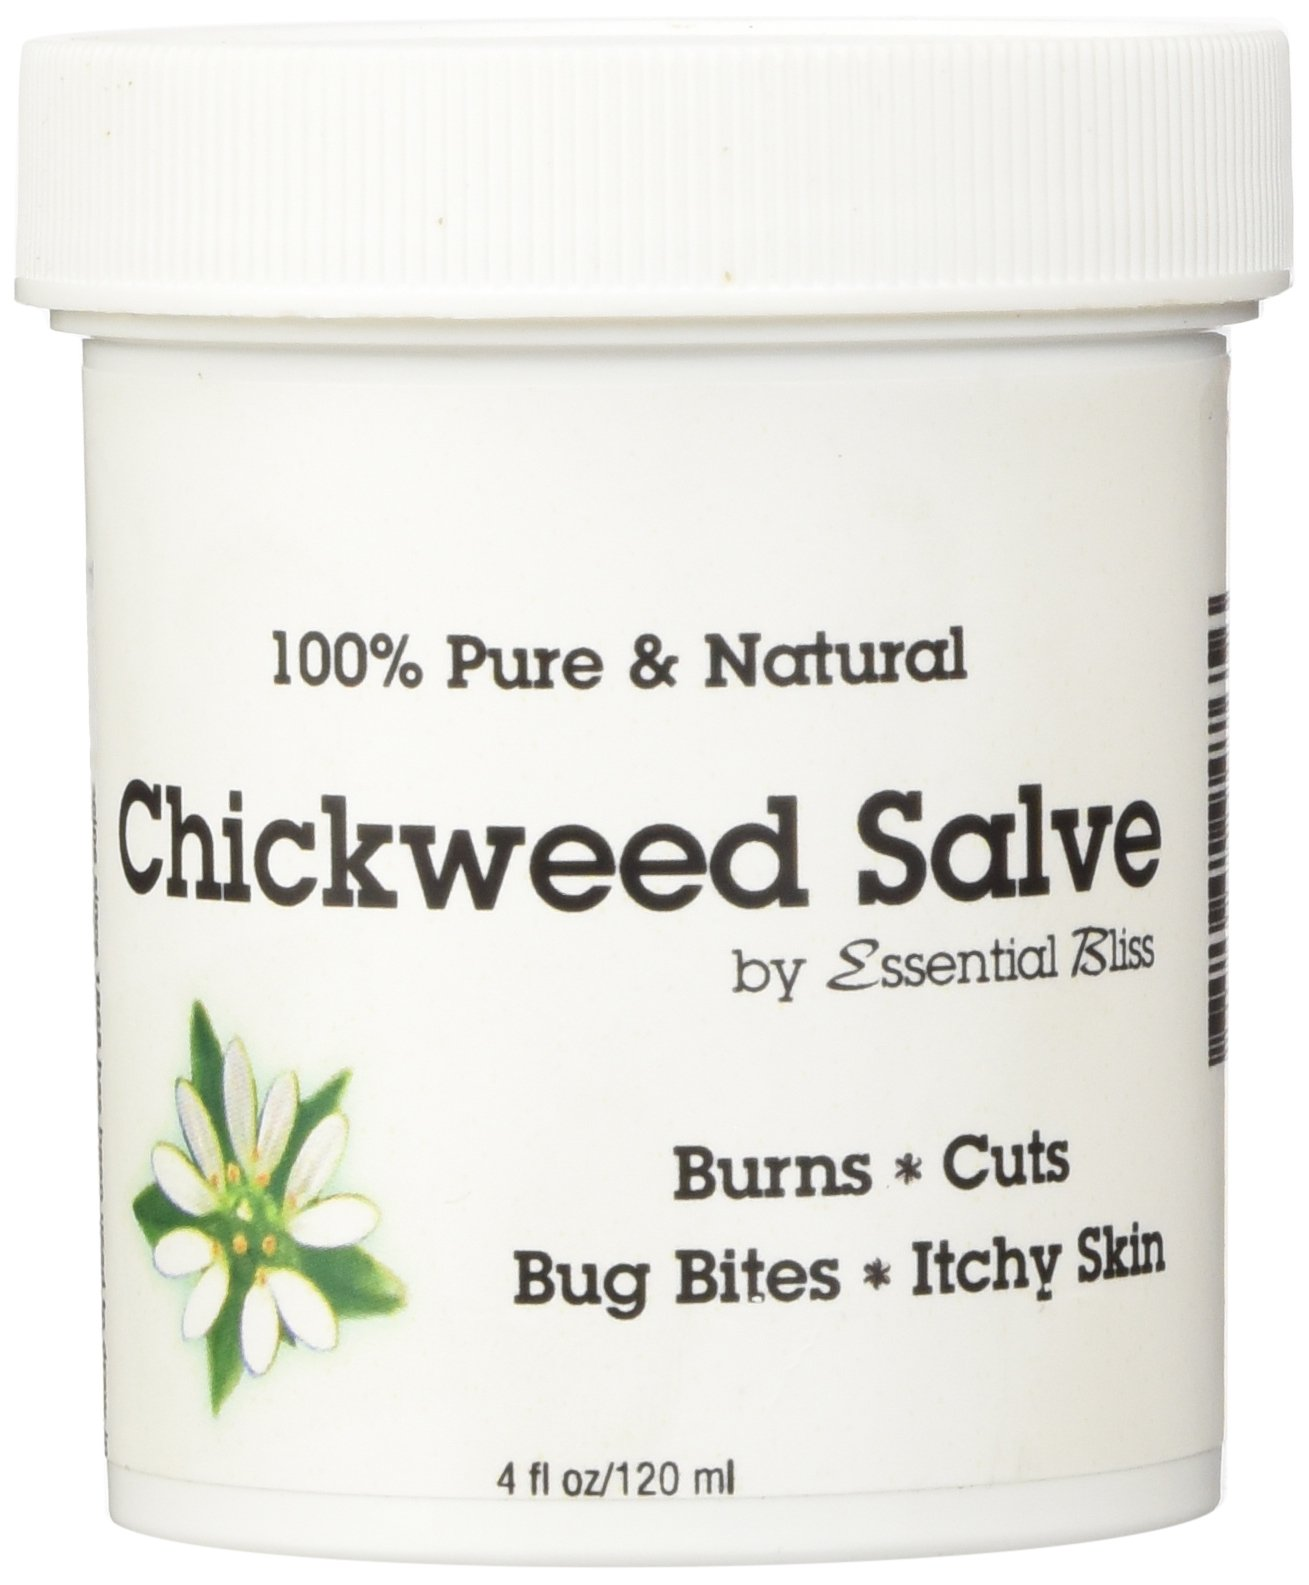 Chickweed Salve Soothes Burns Cuts Bug Bites